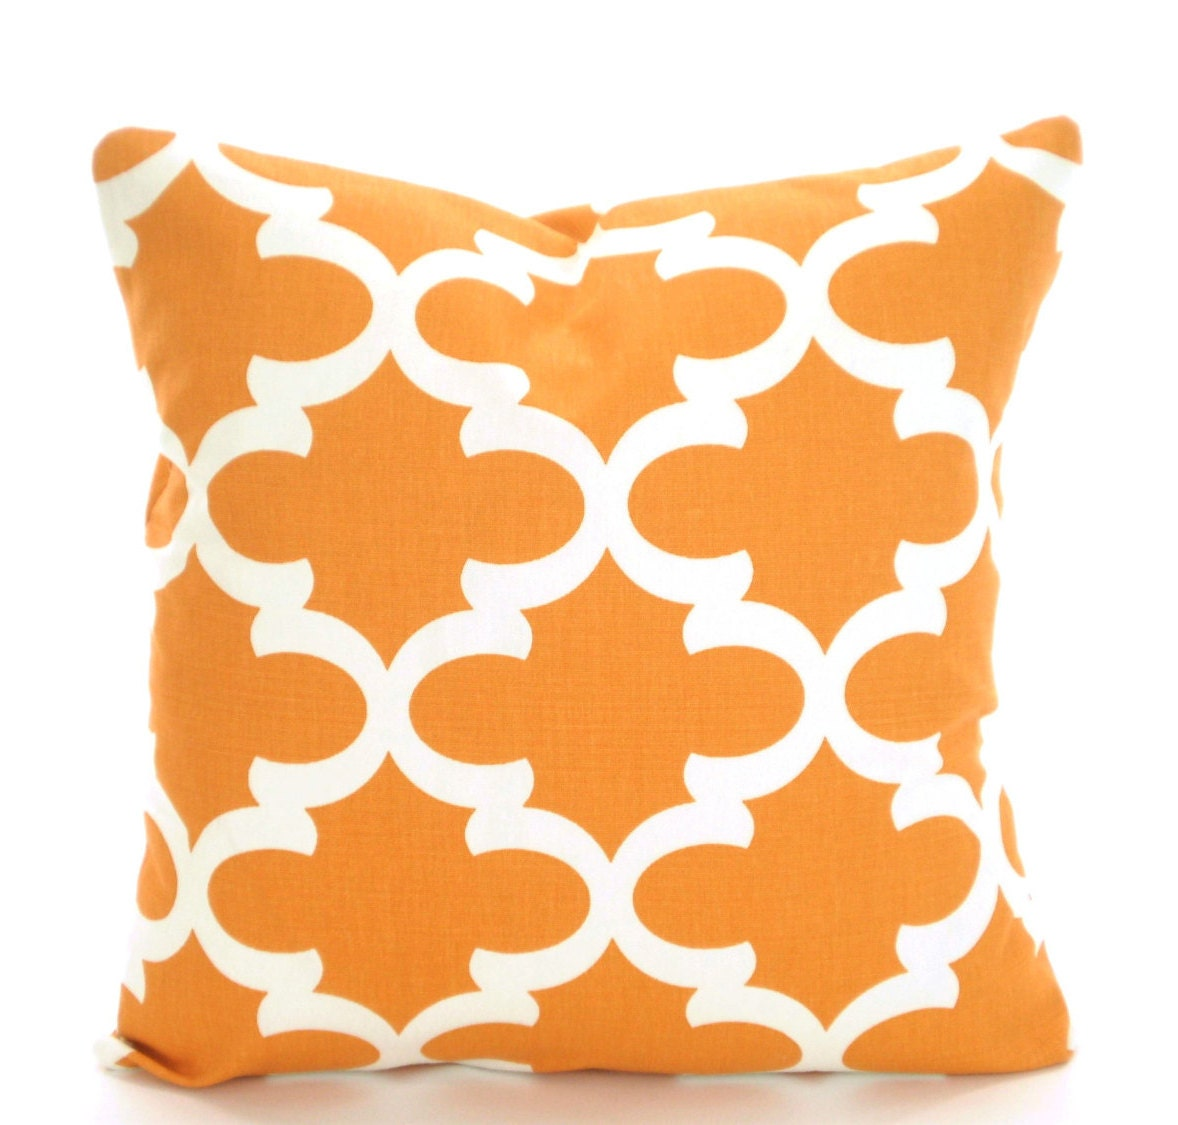 Throw Pillows With Orange : Orange Pillow Covers Decorative Throw Pillows Cushions